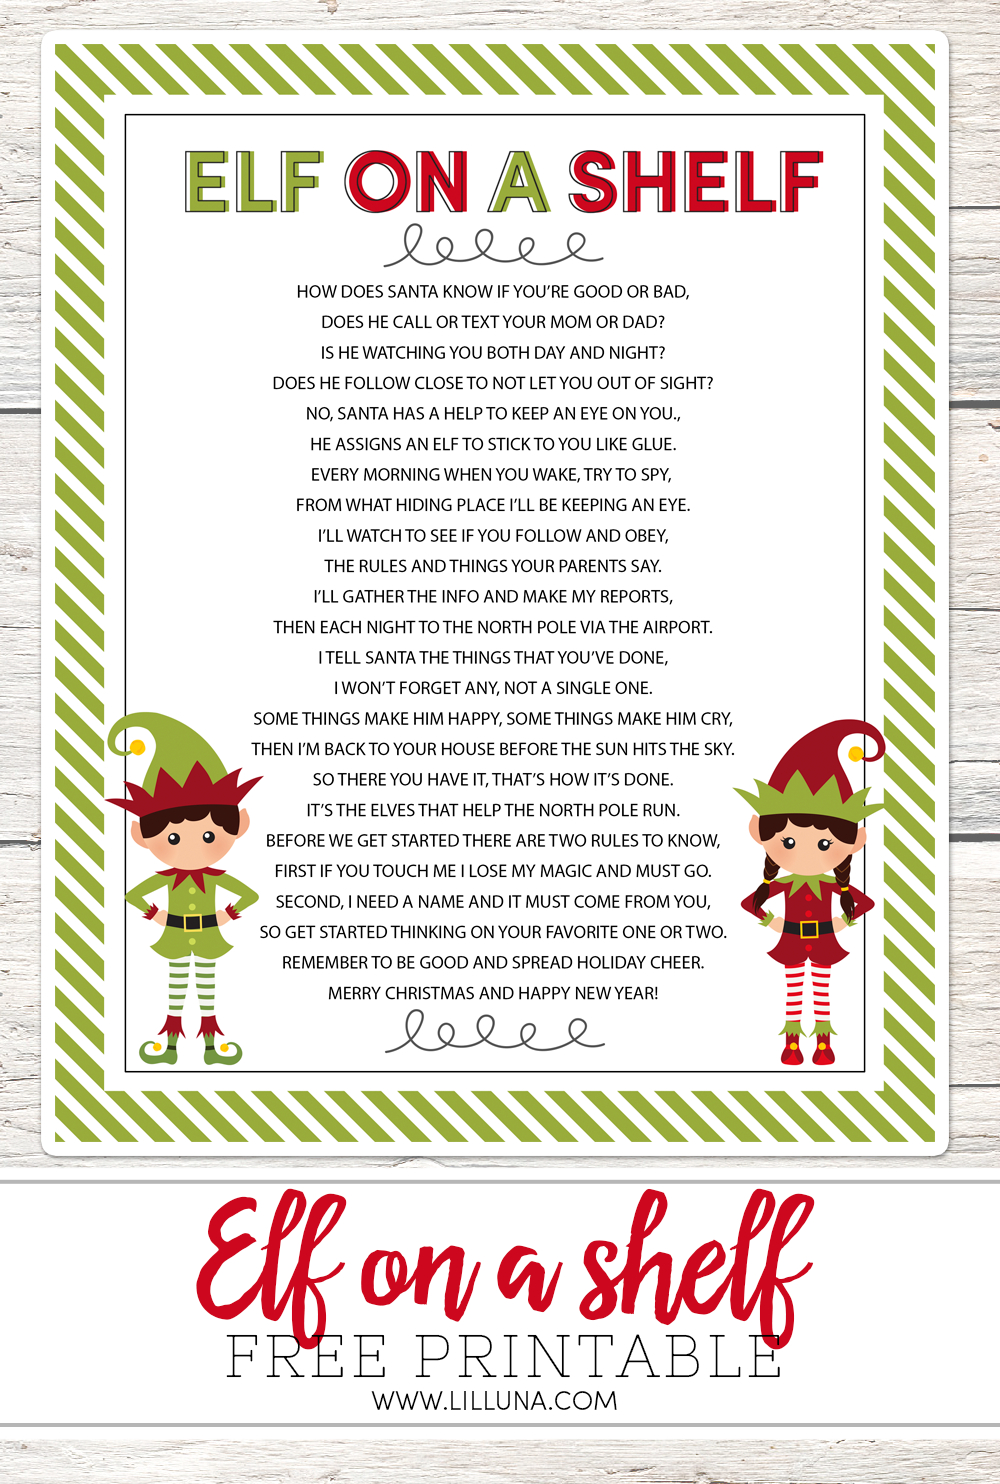 Elf On The Shelf Story - Free Printable Poem - Lil' Luna - Free Printable Elf On The Shelf Story